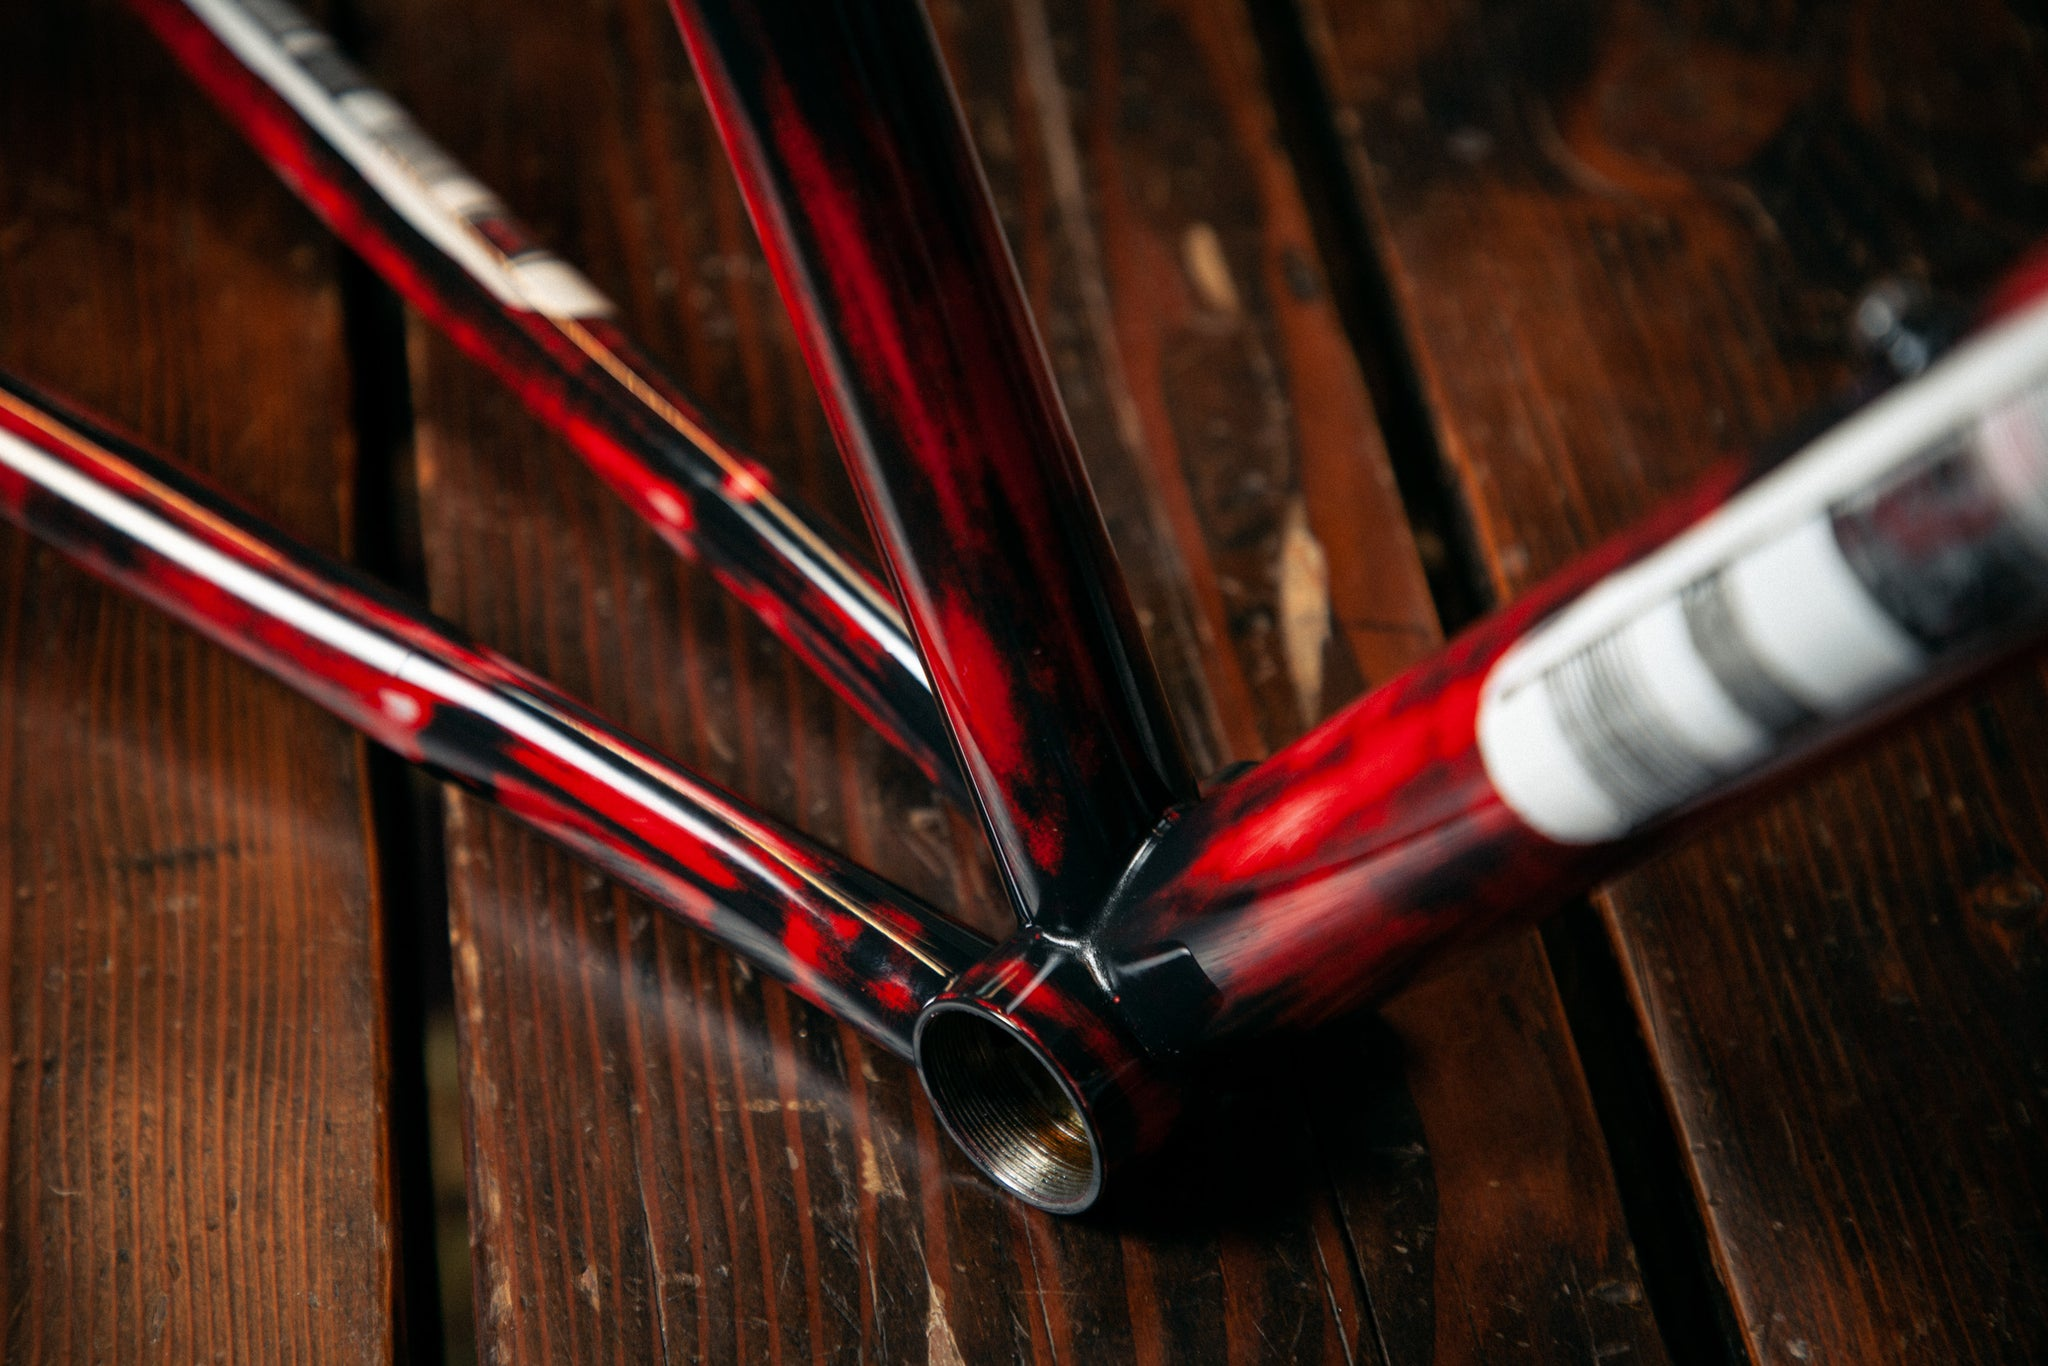 https://abovecategorycycling.com/blogs/gallery/gallery-a-wine-red-pegoretti-mxxxxxo frameset 2